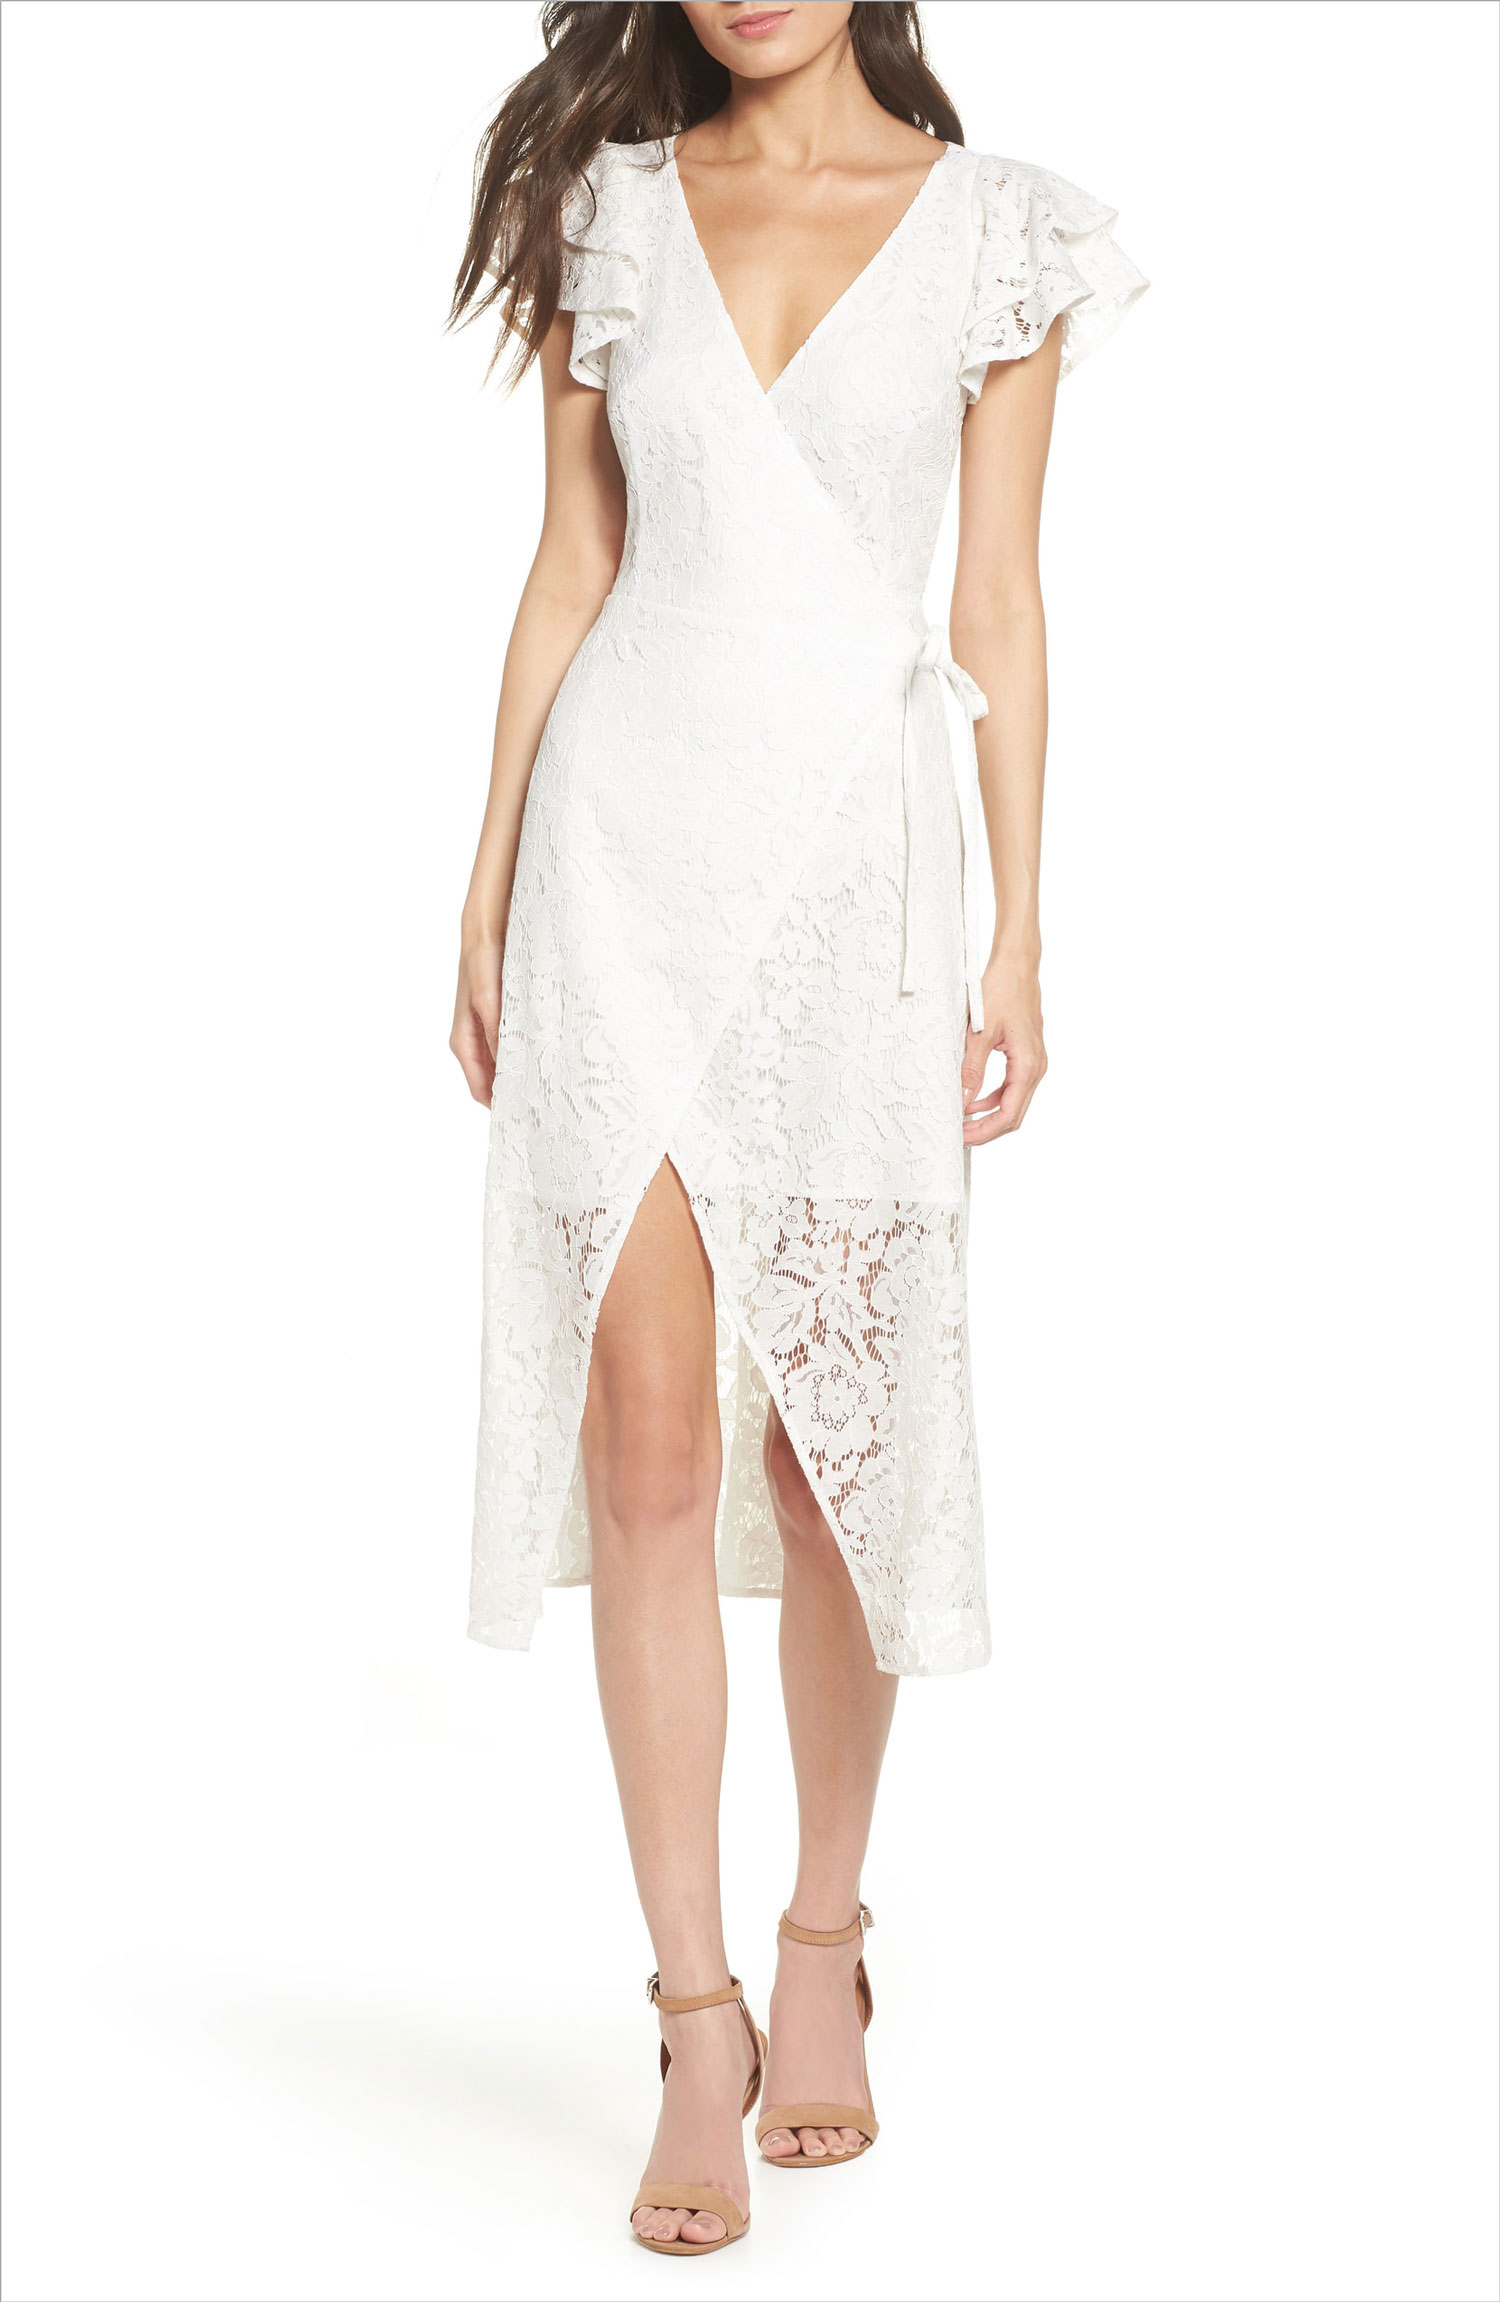 Lace and paper flowers wrap midi dress lace show me your mumu bridal shower dress ideas